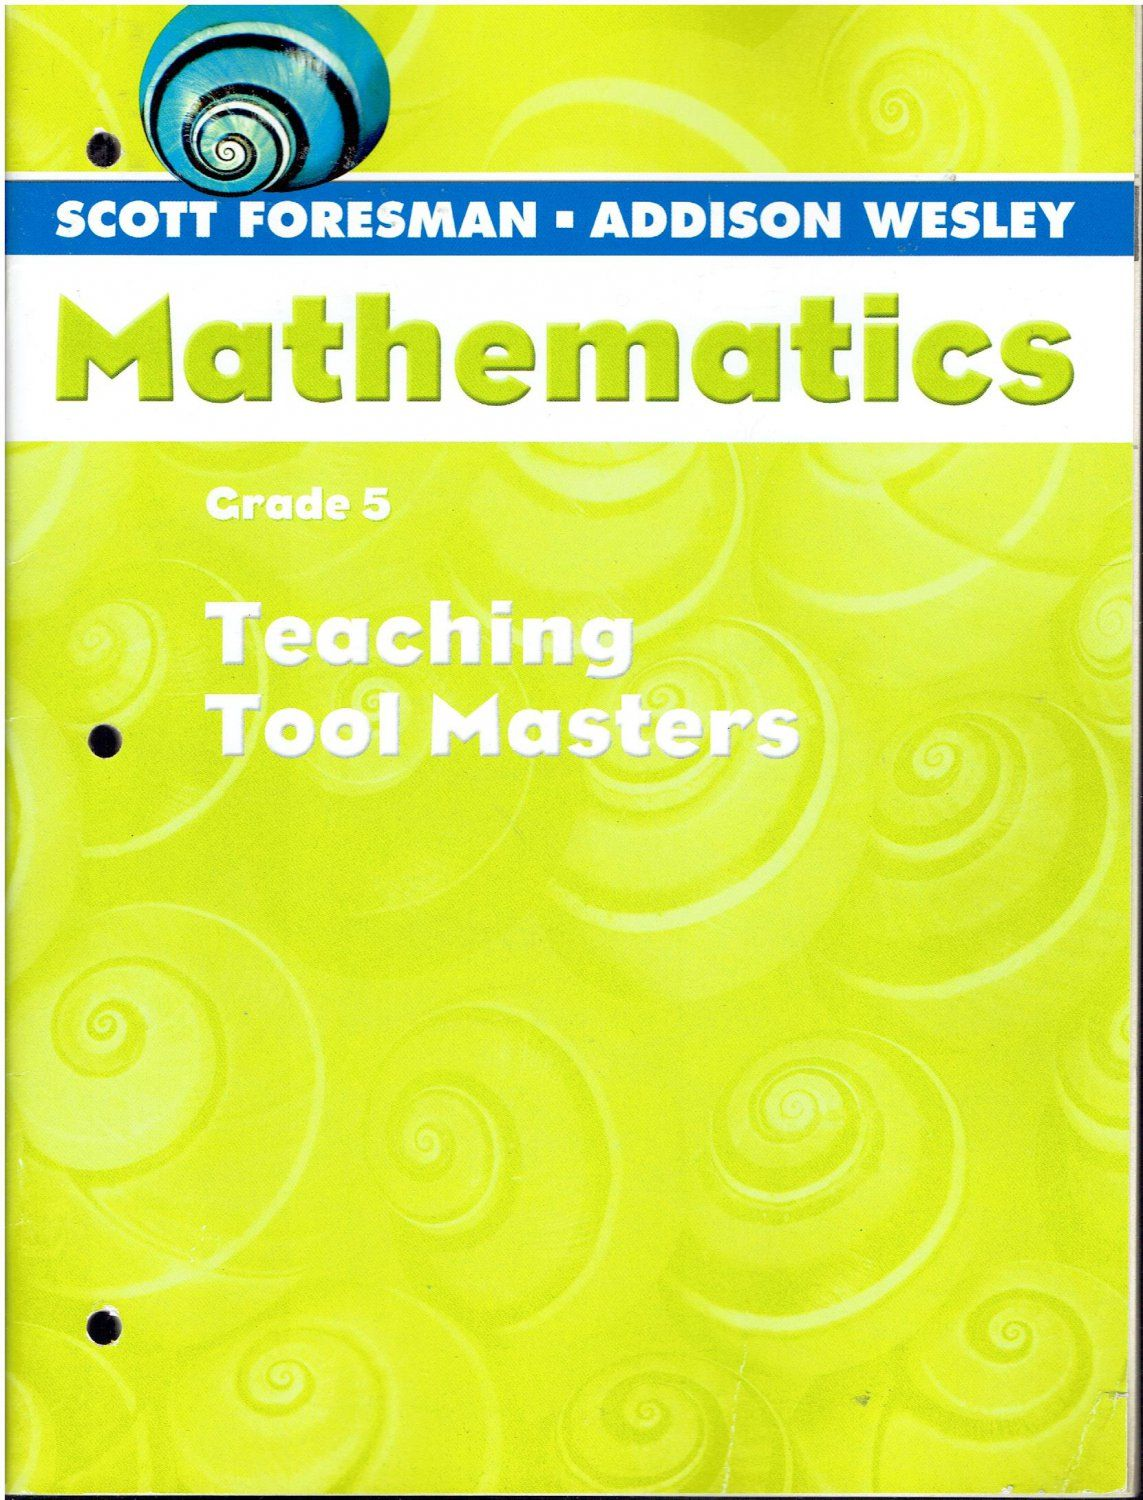 Scott Foresman Addison Wesley Mathematics Grade 5 Teaching Tool Masters A C 2004 Isbn 032804993x Ma2 Teaching Tools Mathematics Math Textbook